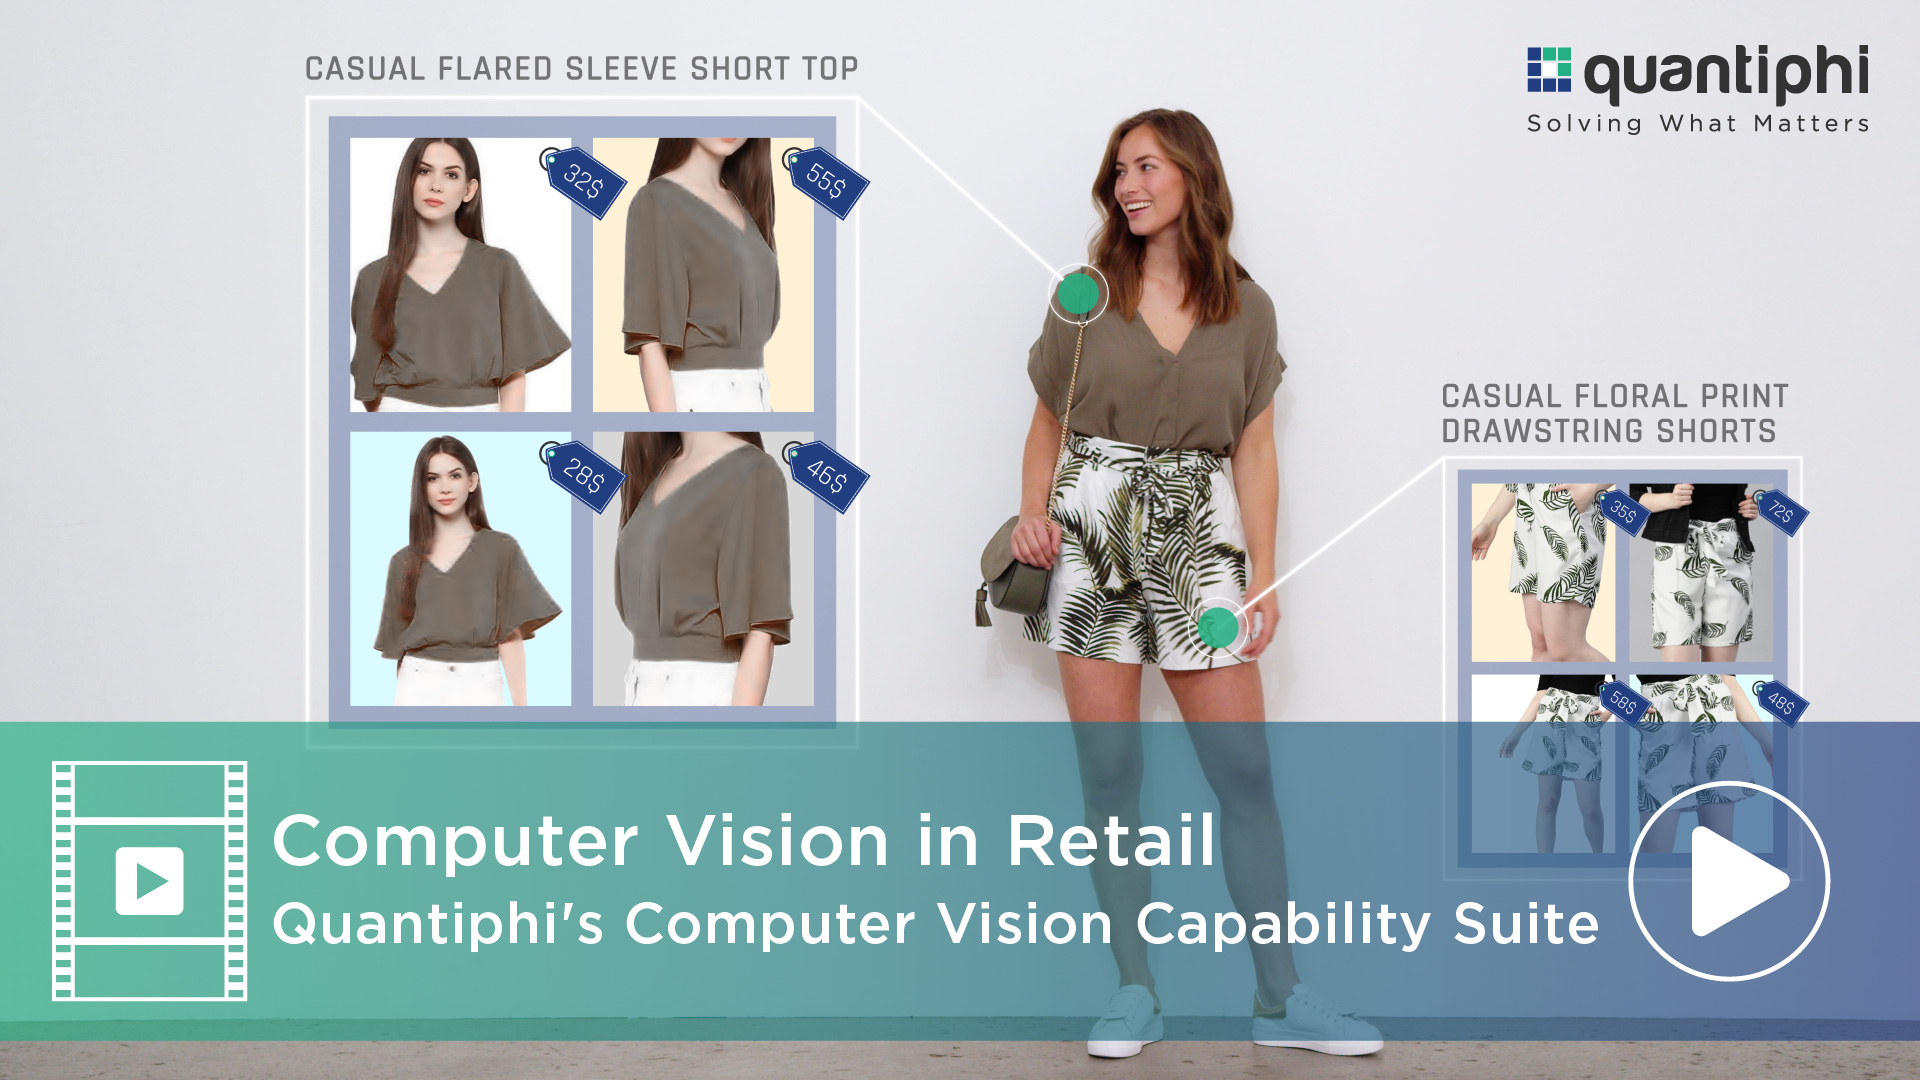 Computer Vision in Retail